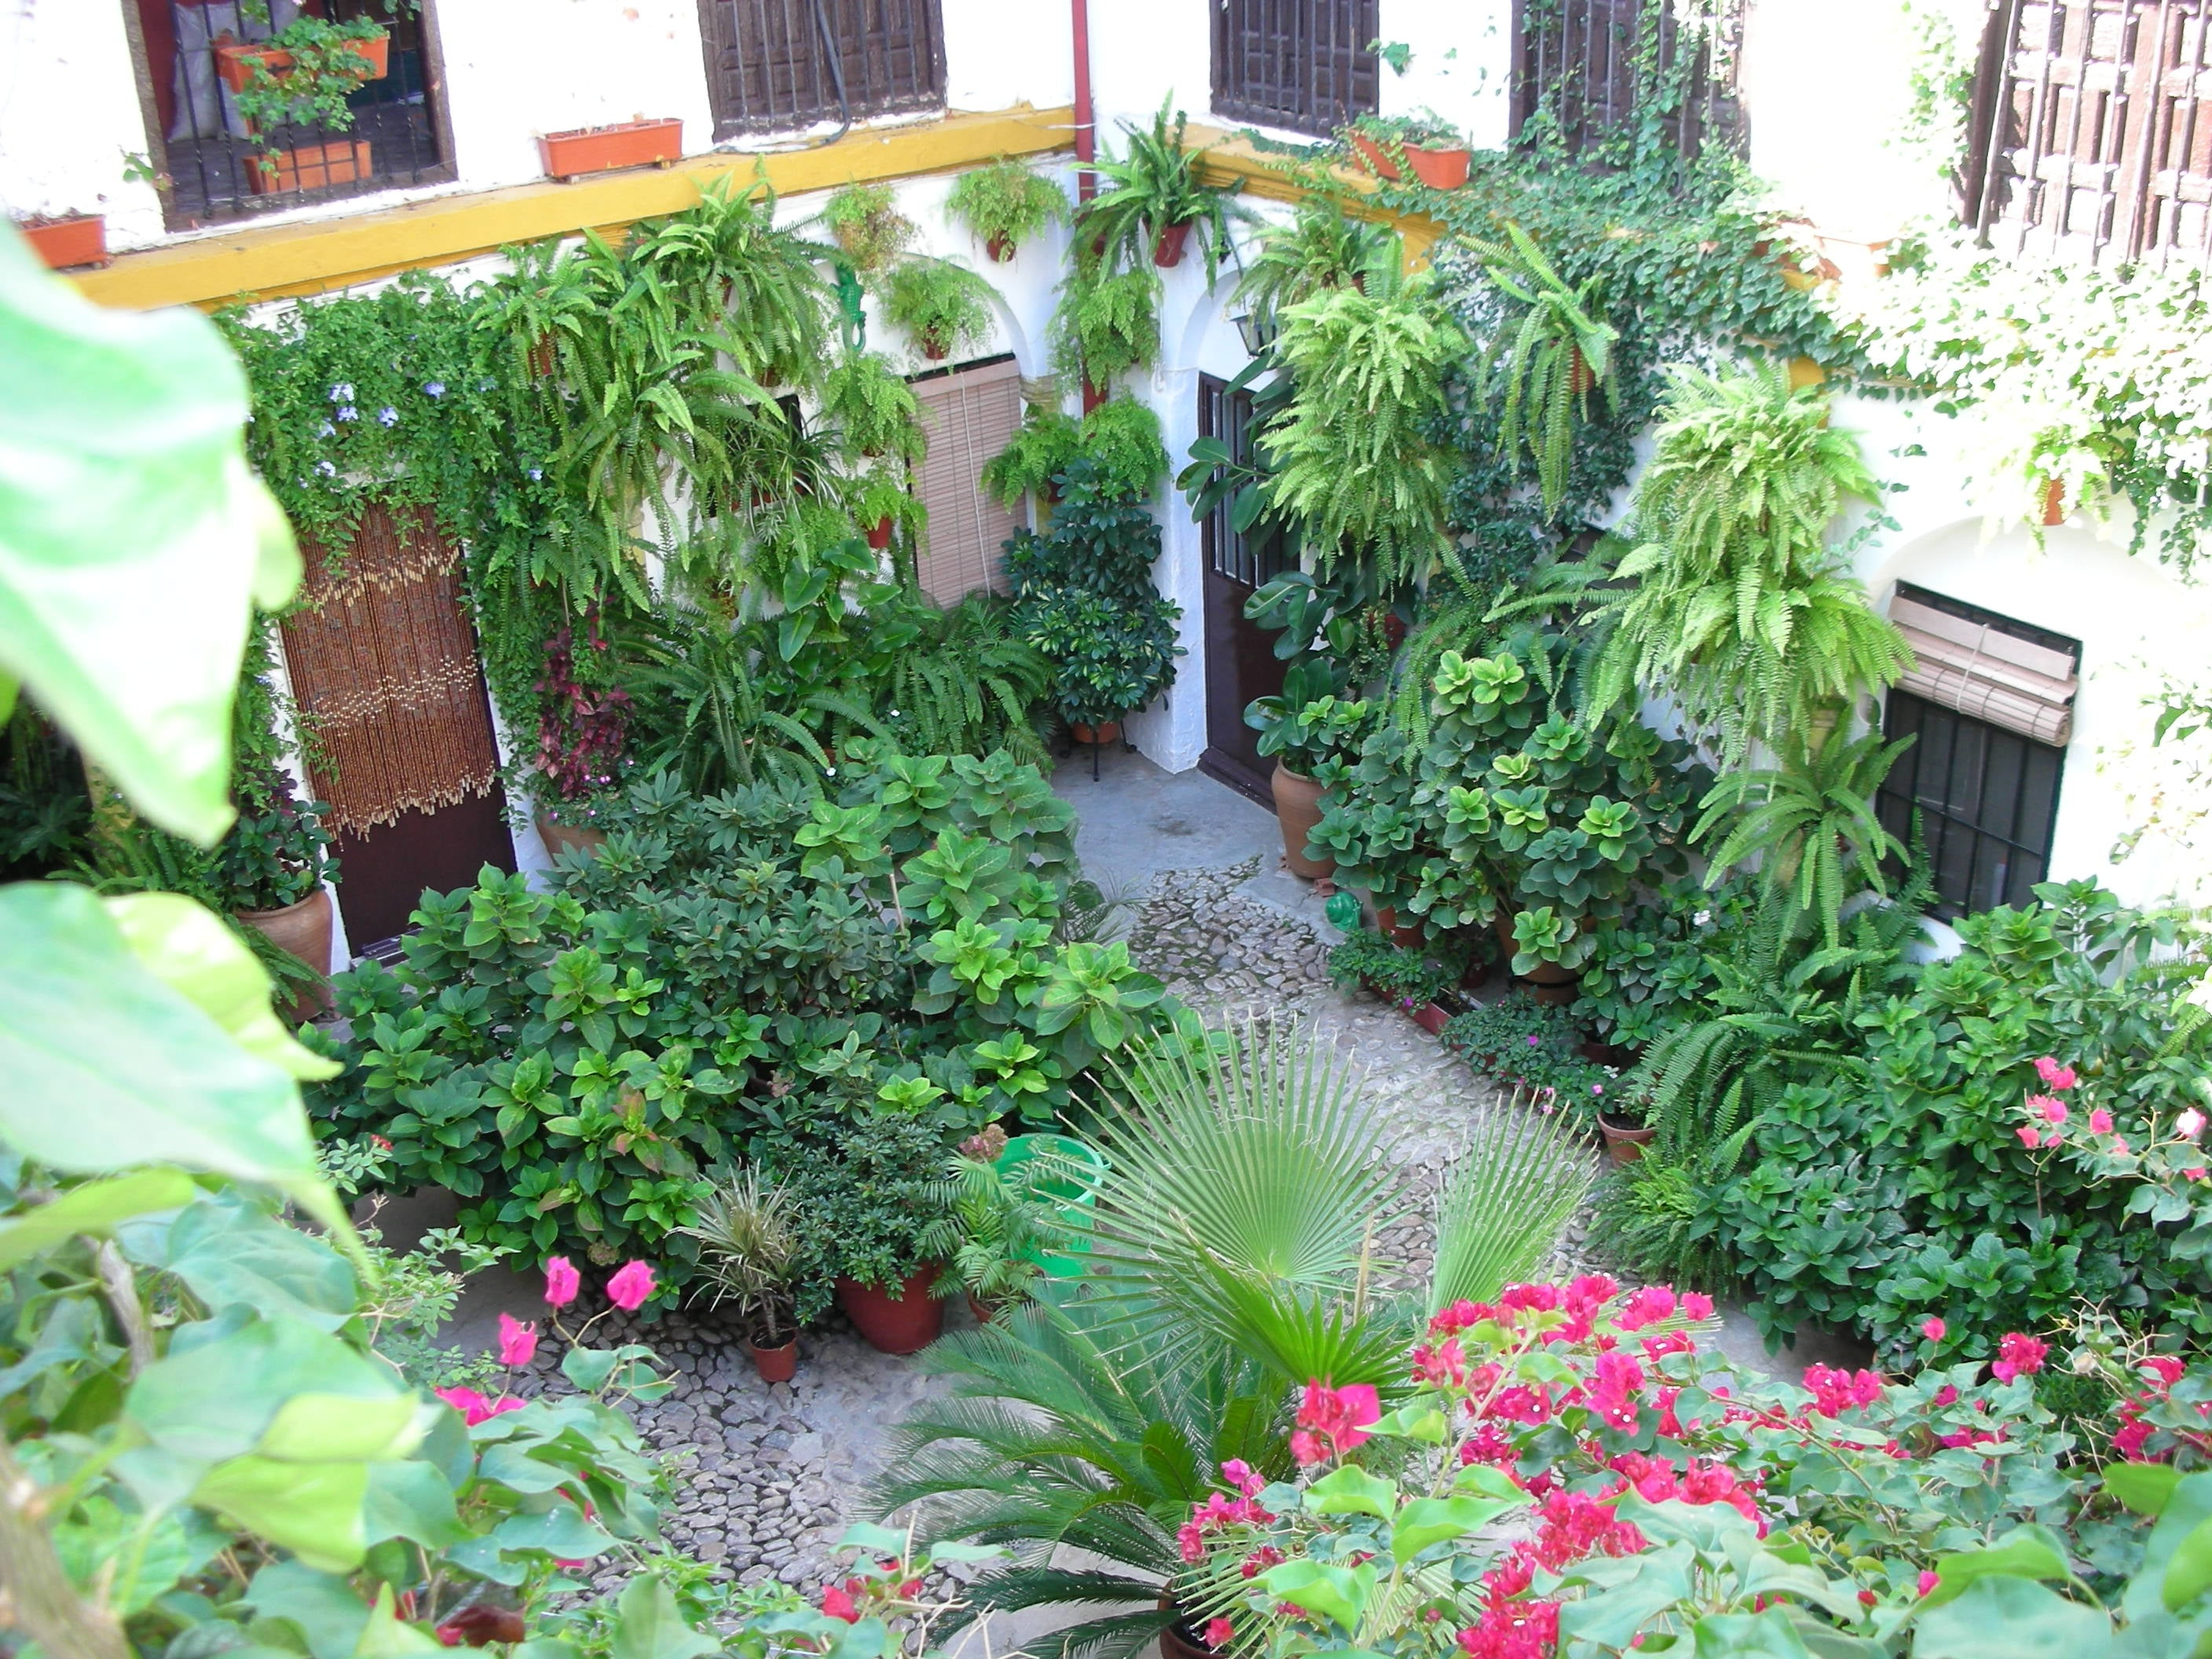 The Courtyards of Cordoba